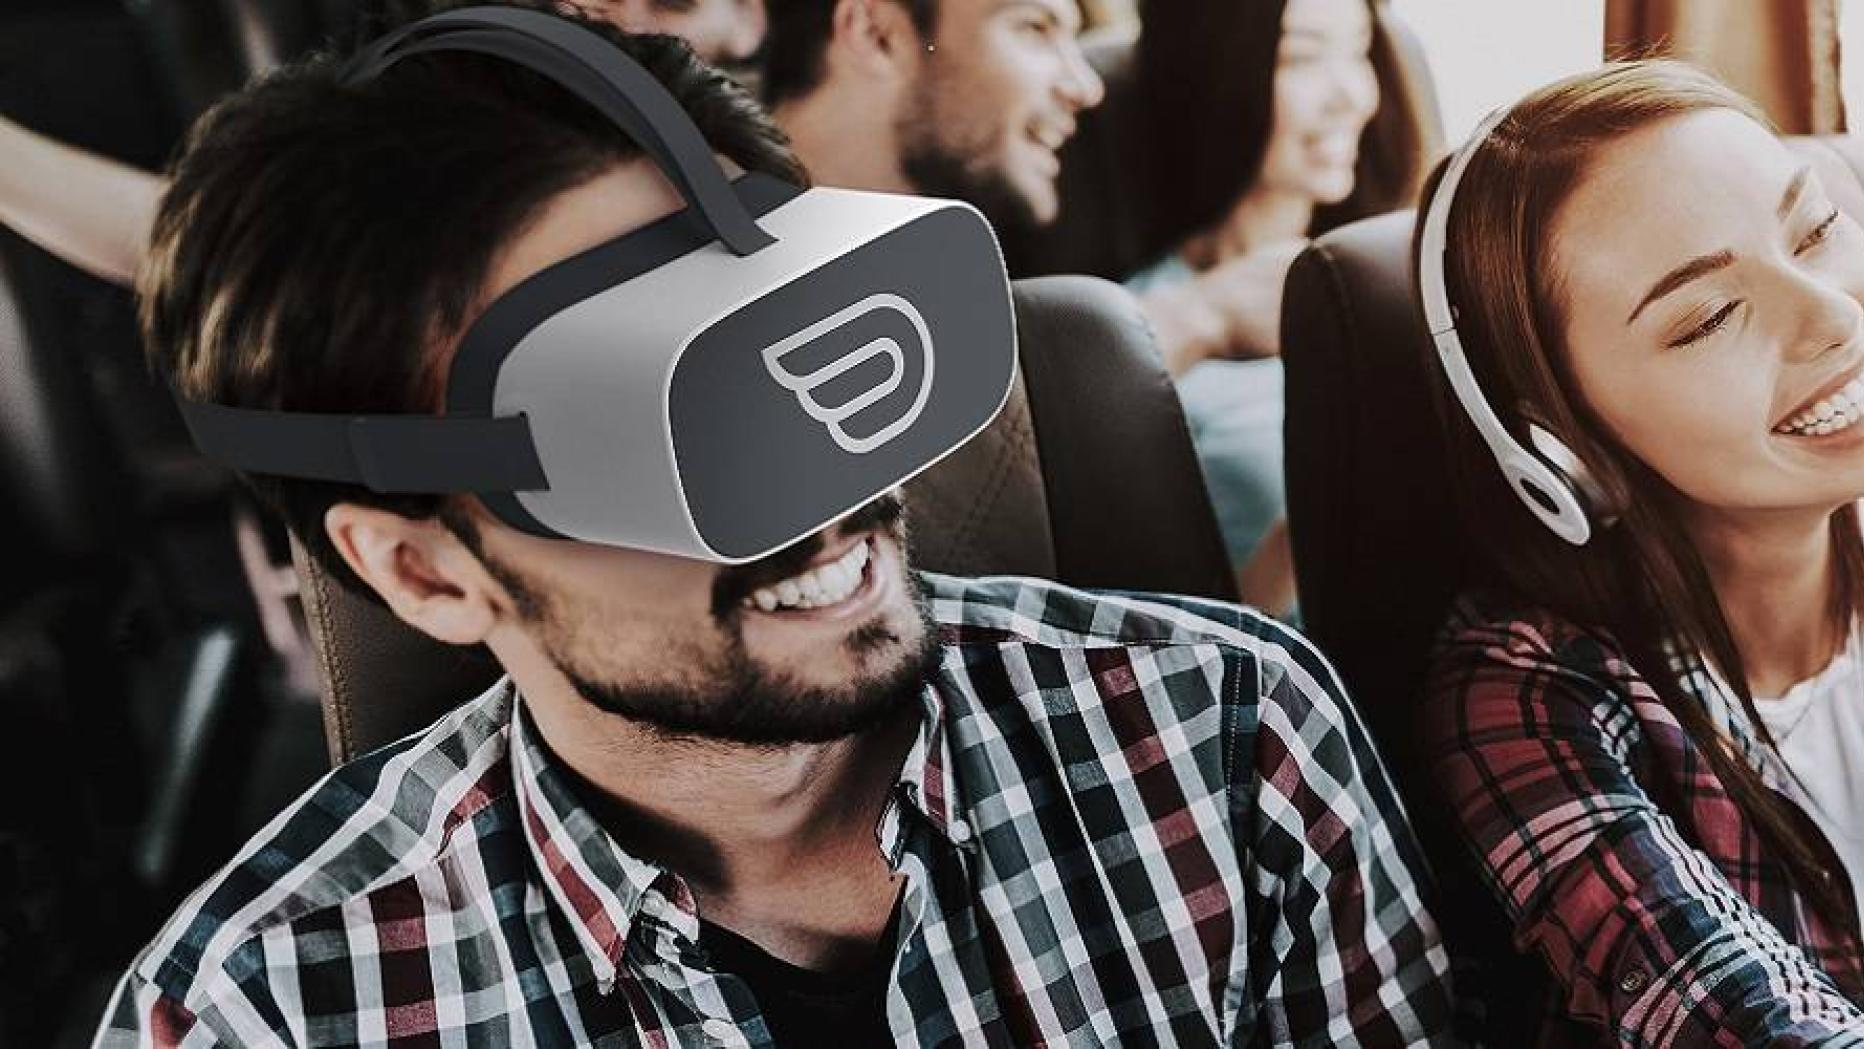 FlixBus bietet Passagieren Virtual-Reality-Headsets